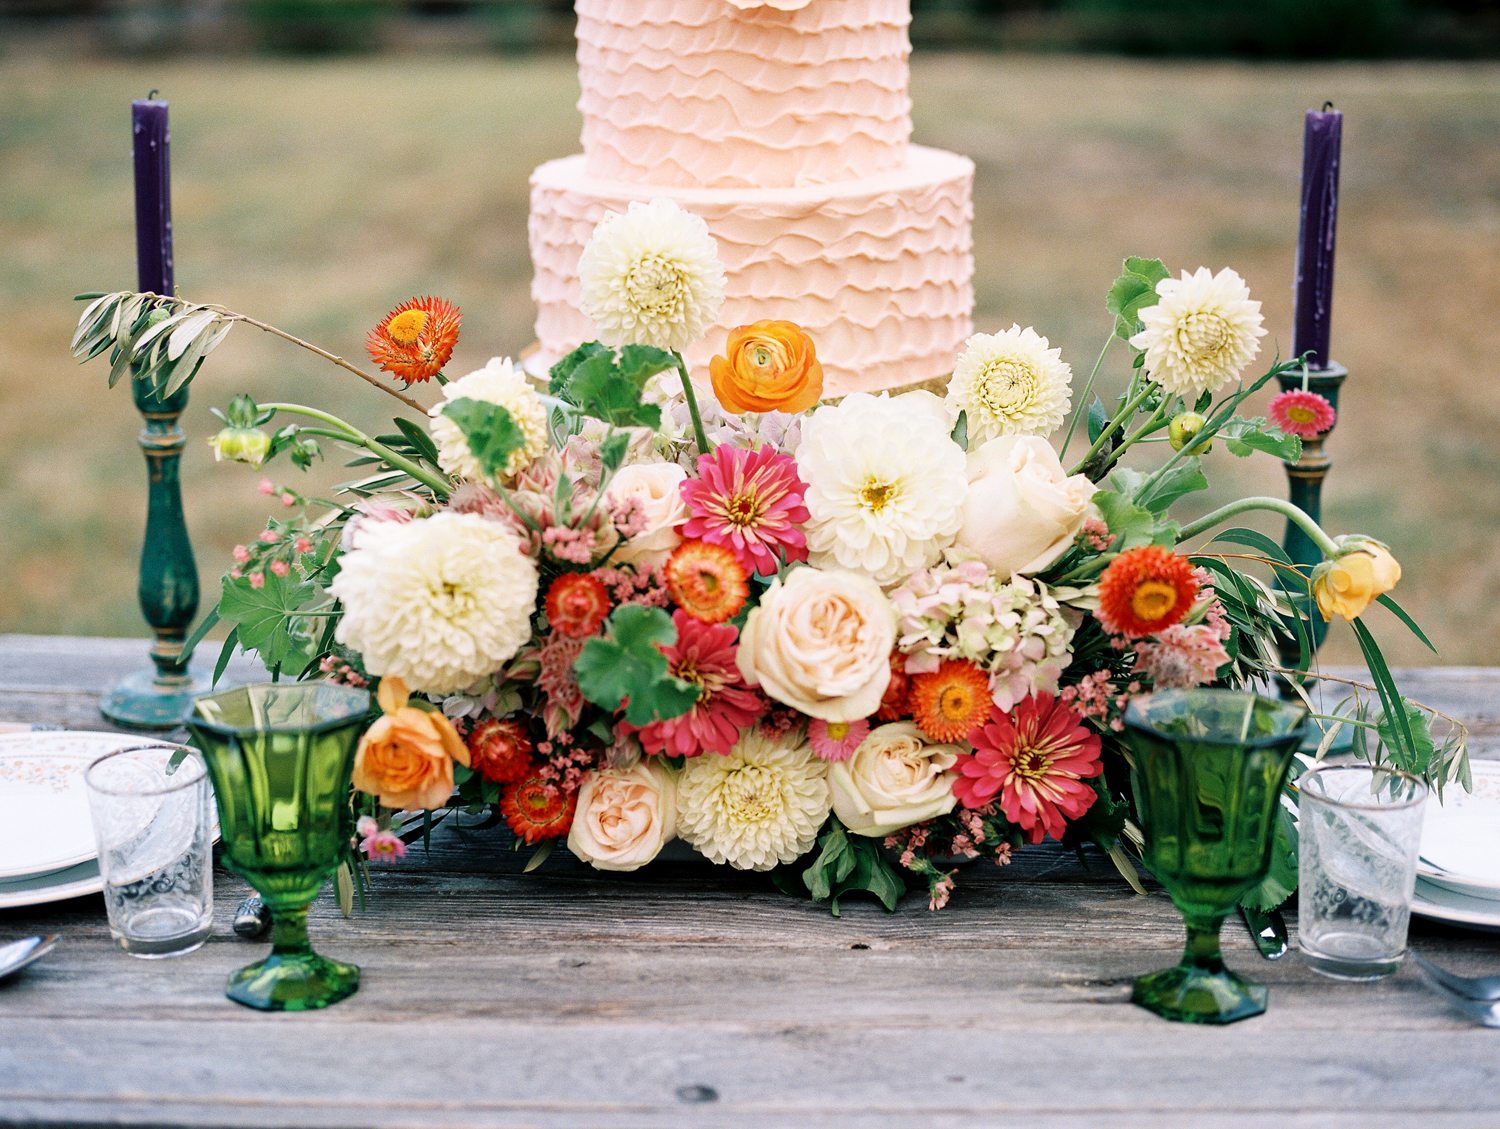 Floral Friday | Colorful Bohemian Arrangements by Everly Alaine Florals